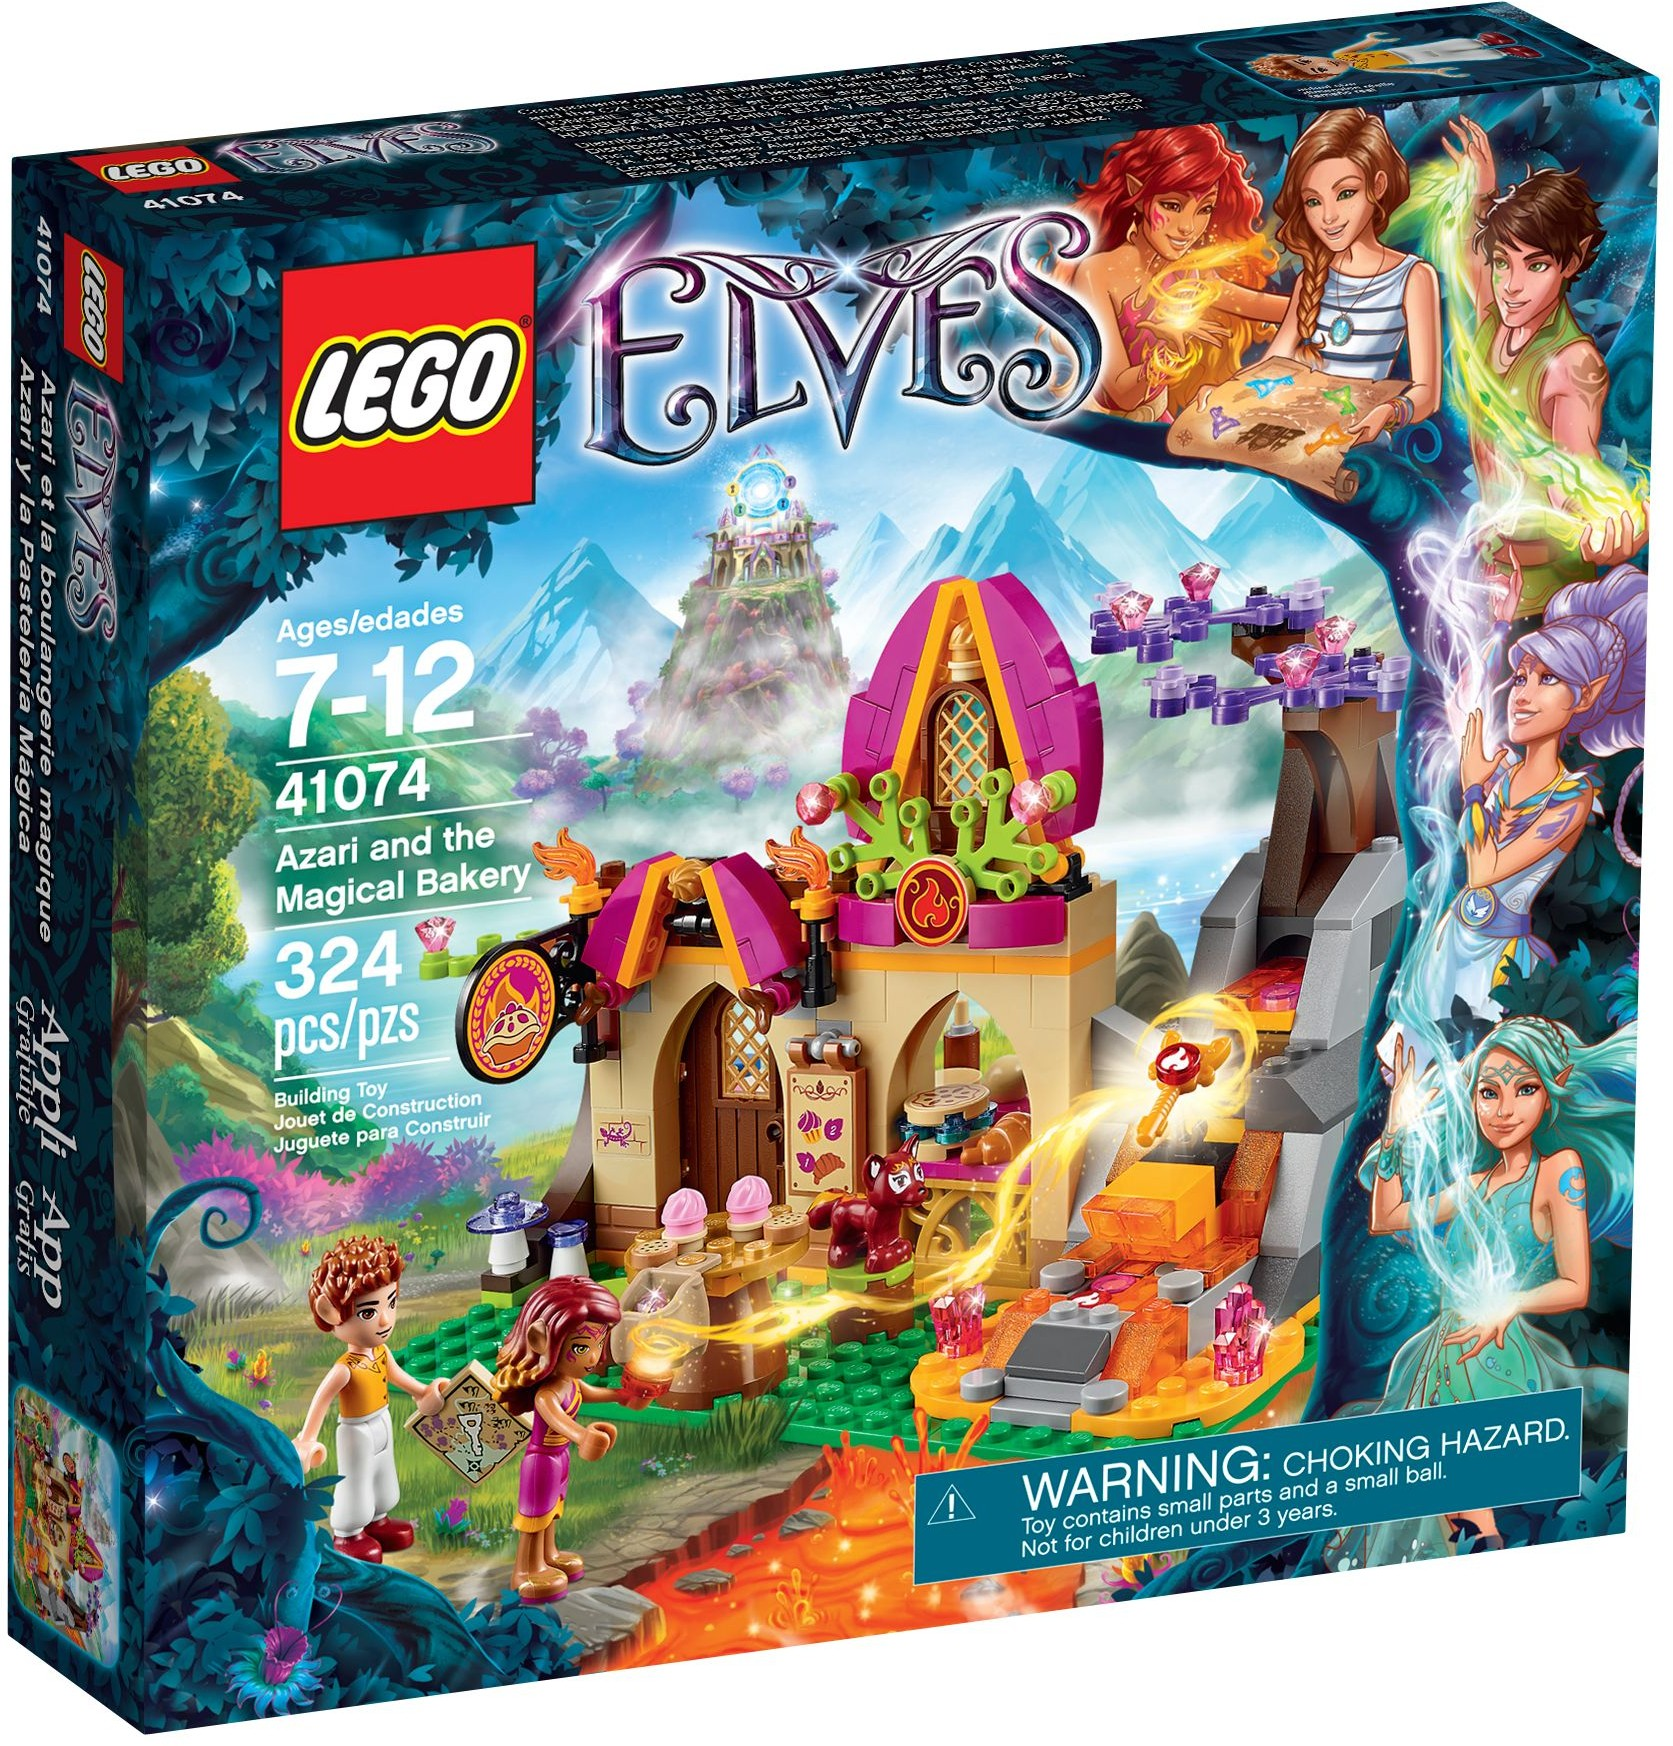 LEGO 41074 - Elves - Azari and the Magical Bakery